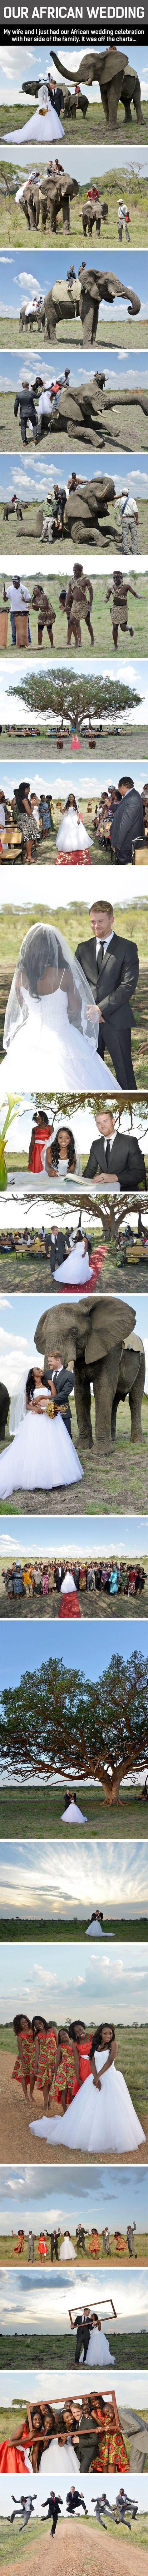 Our African Wedding – 20 Pics